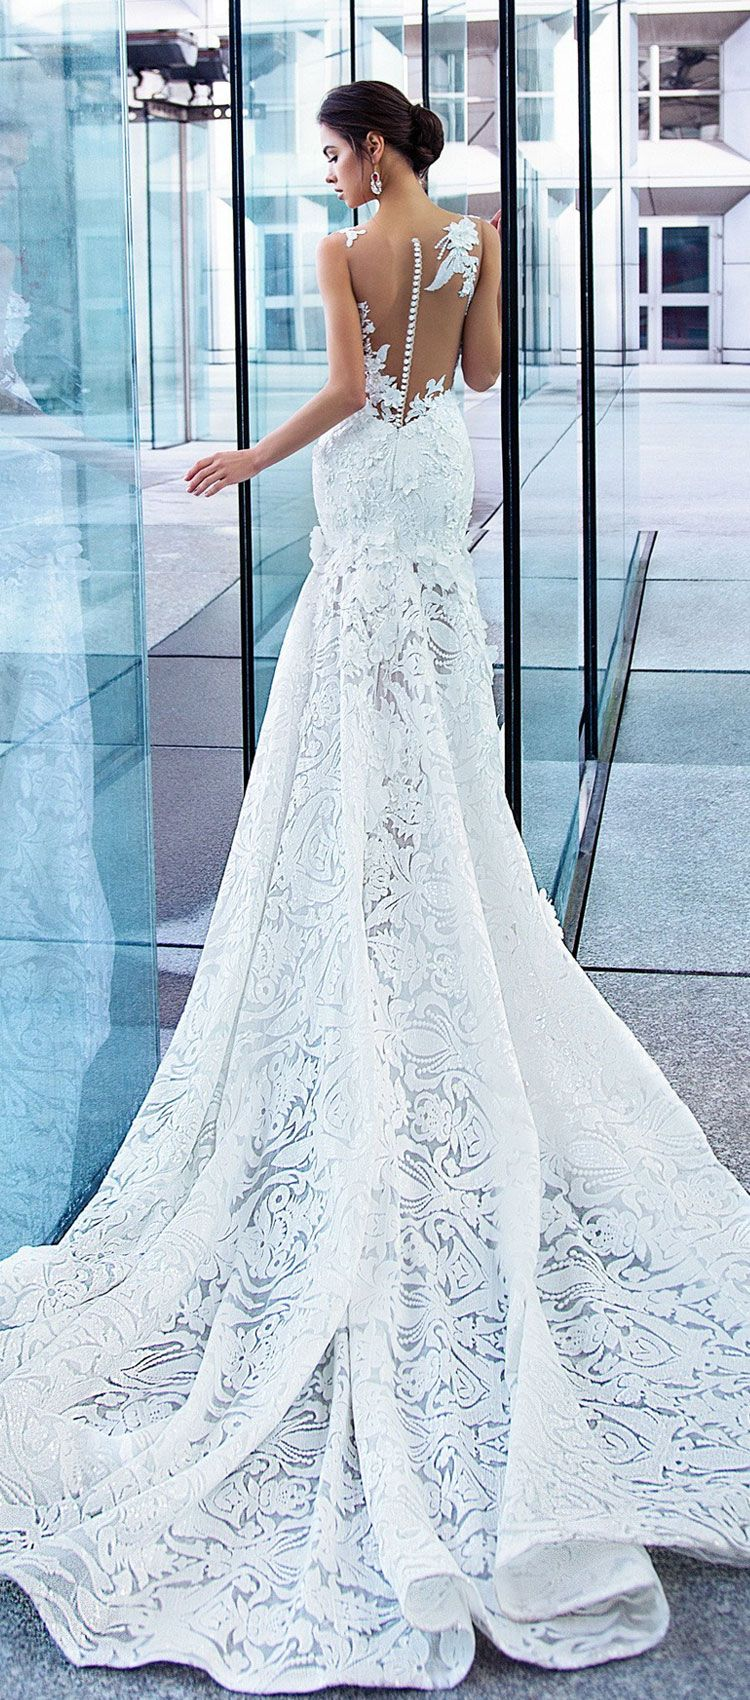 Sleeveless 3d florals applique covering the bra-caps fully embellishment fit and flare wedding gown chapel train #weddingdress #wedding #weddinggown